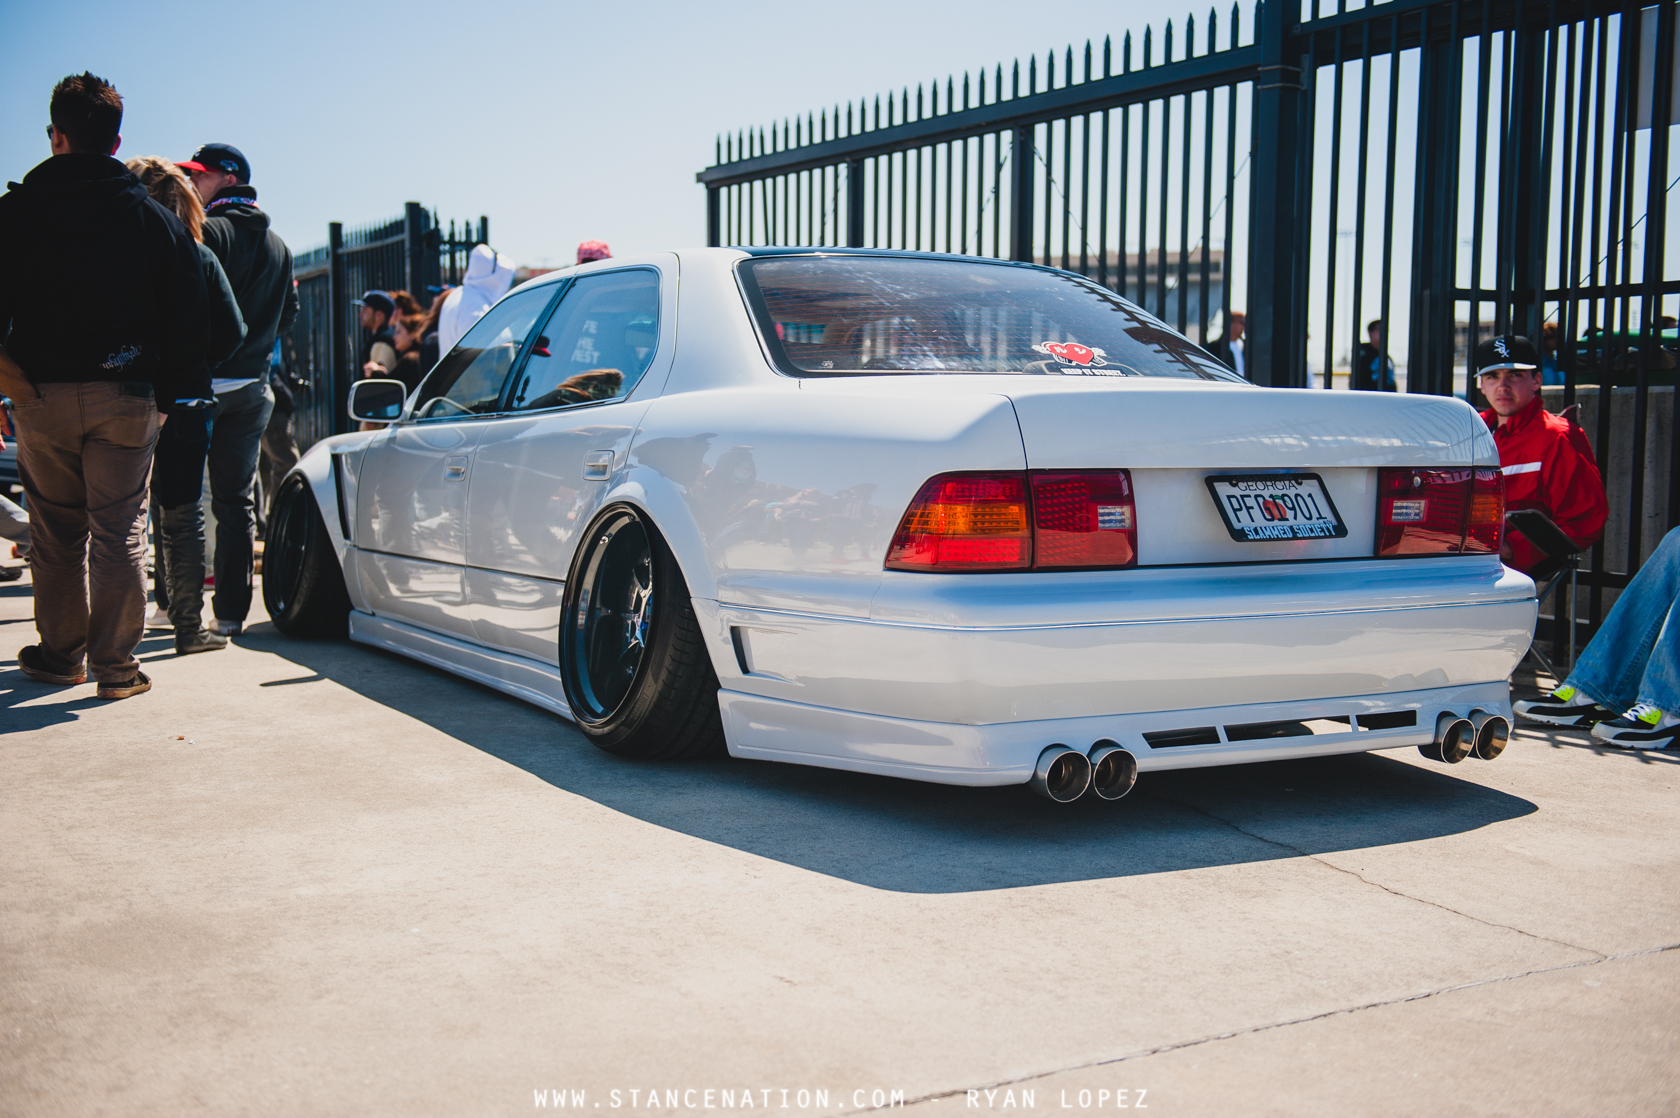 Import alliance summer meet 2015 photo coverage stancenation - Import Alliance 2014 Photo Coverage 178